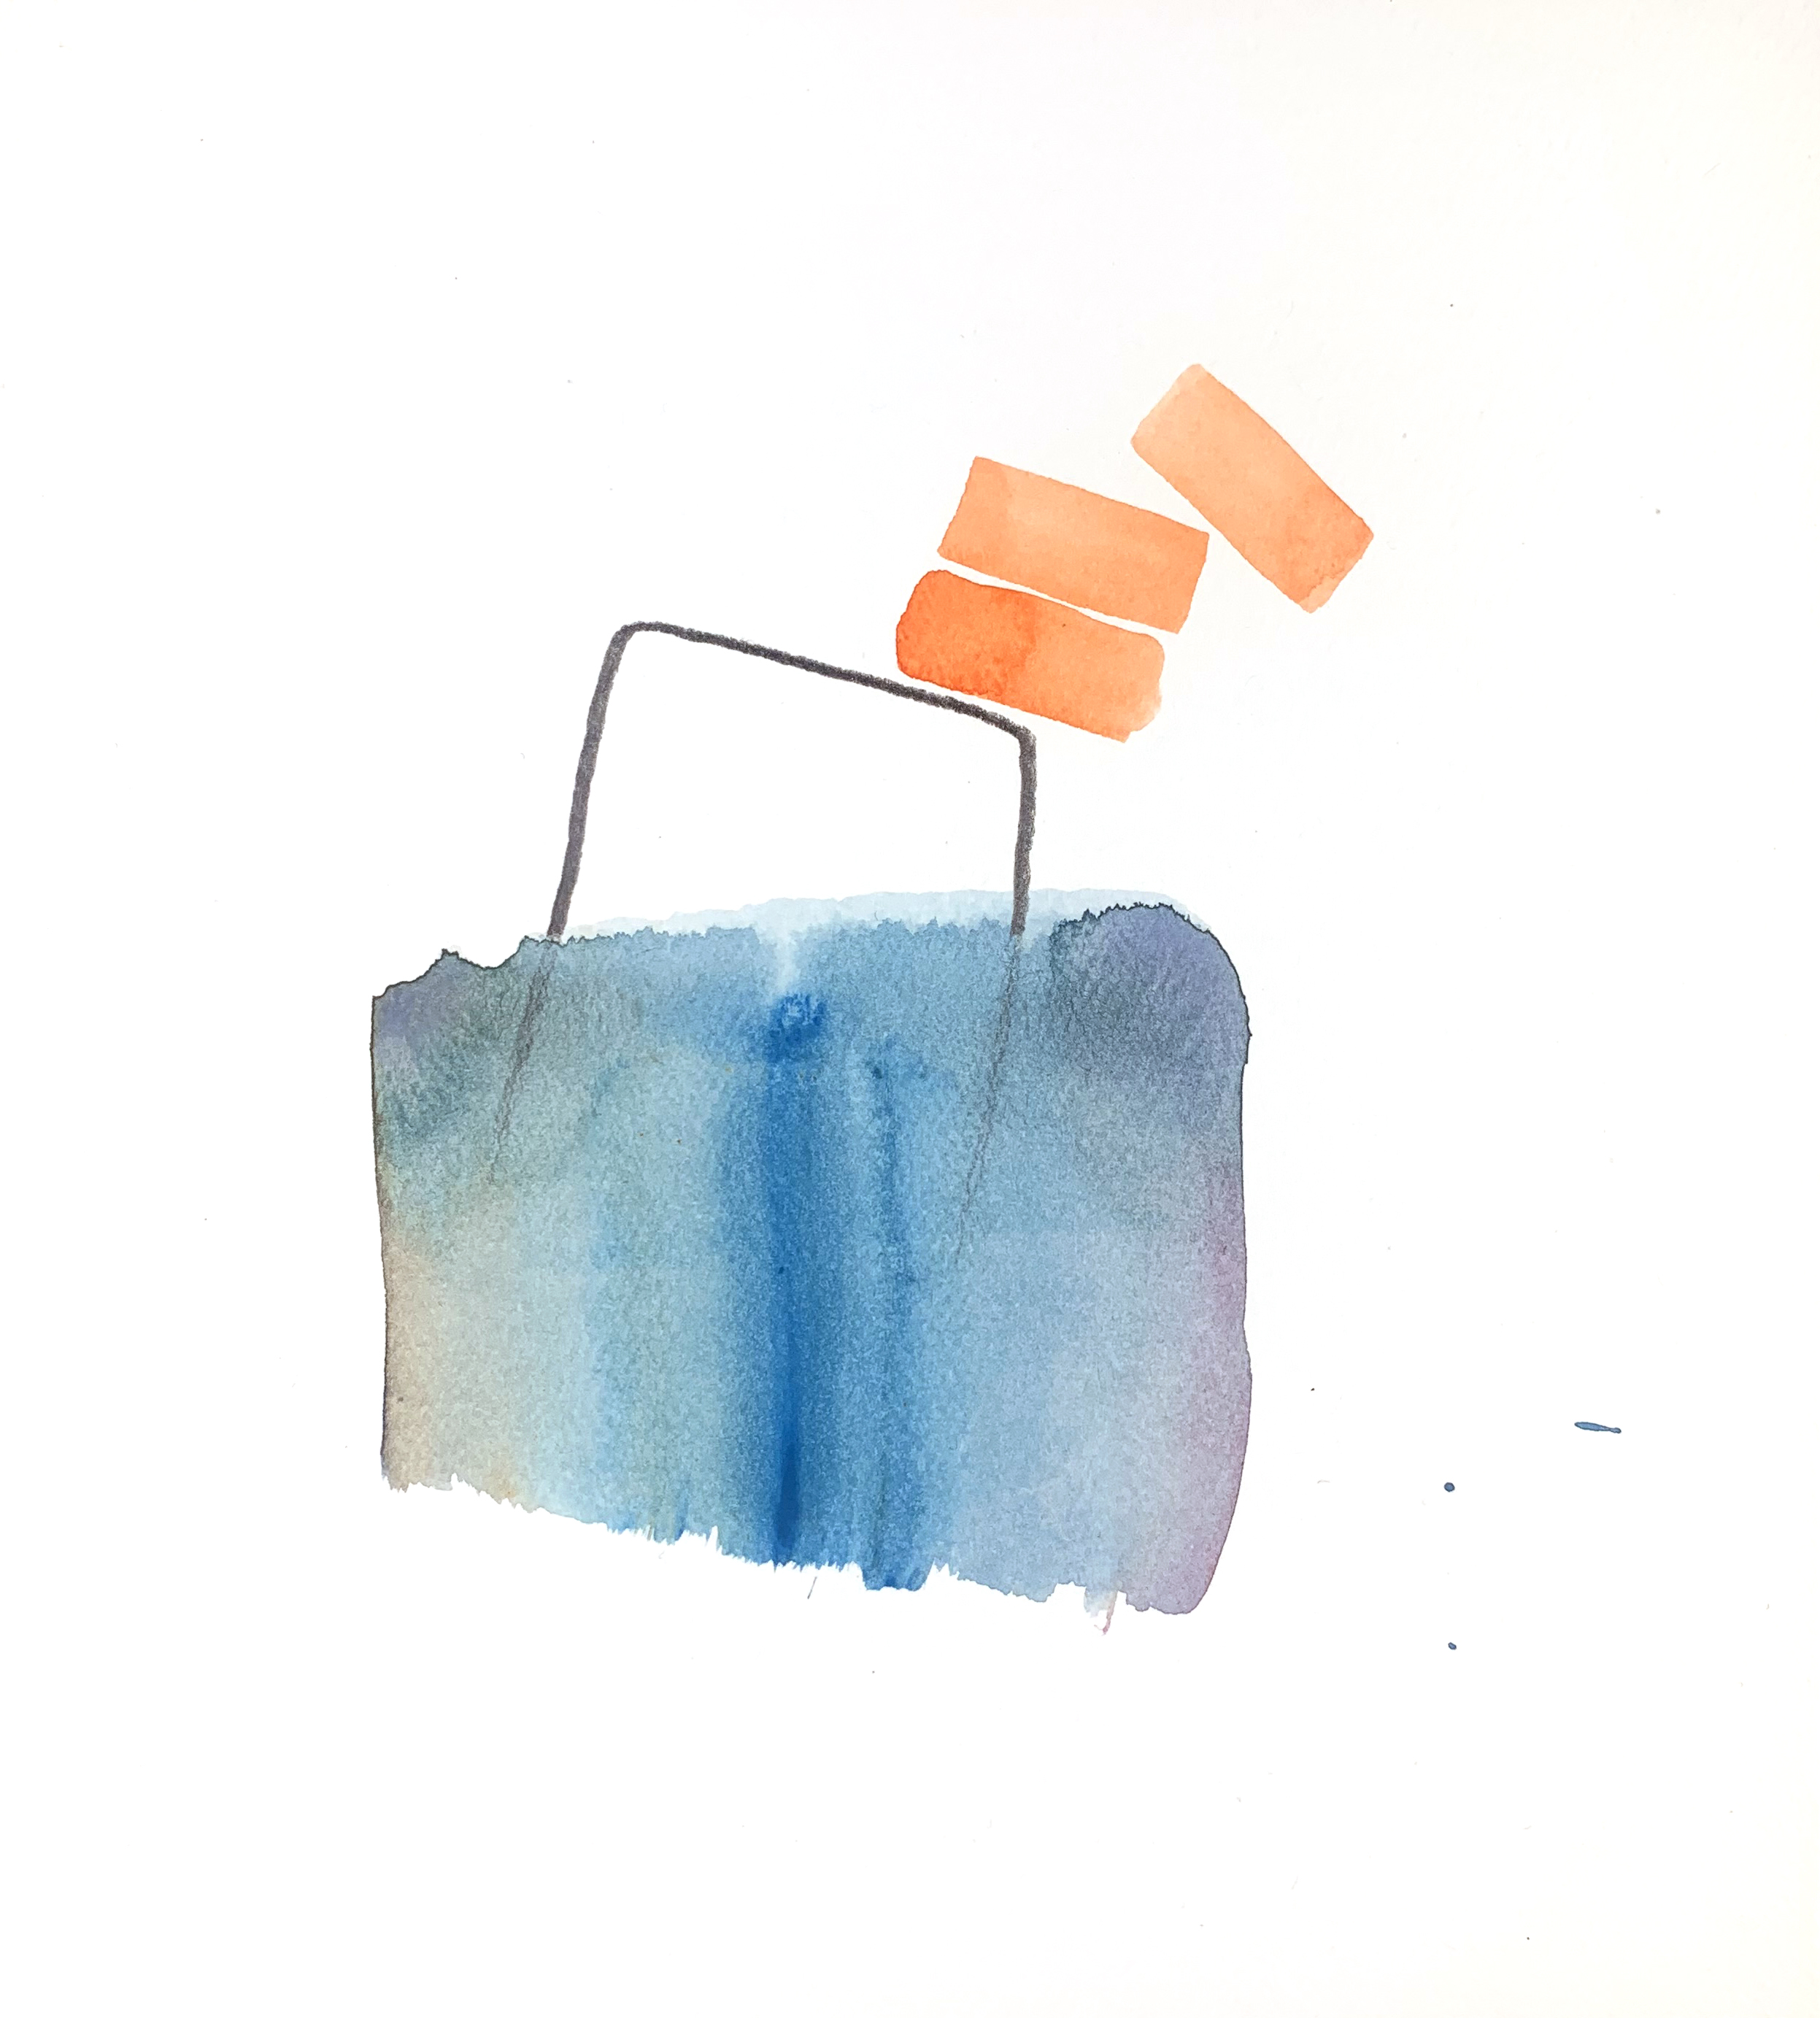 Wesley Berg, Untitled, 2019, Gouache and graphite on paper, 7 x 7in.